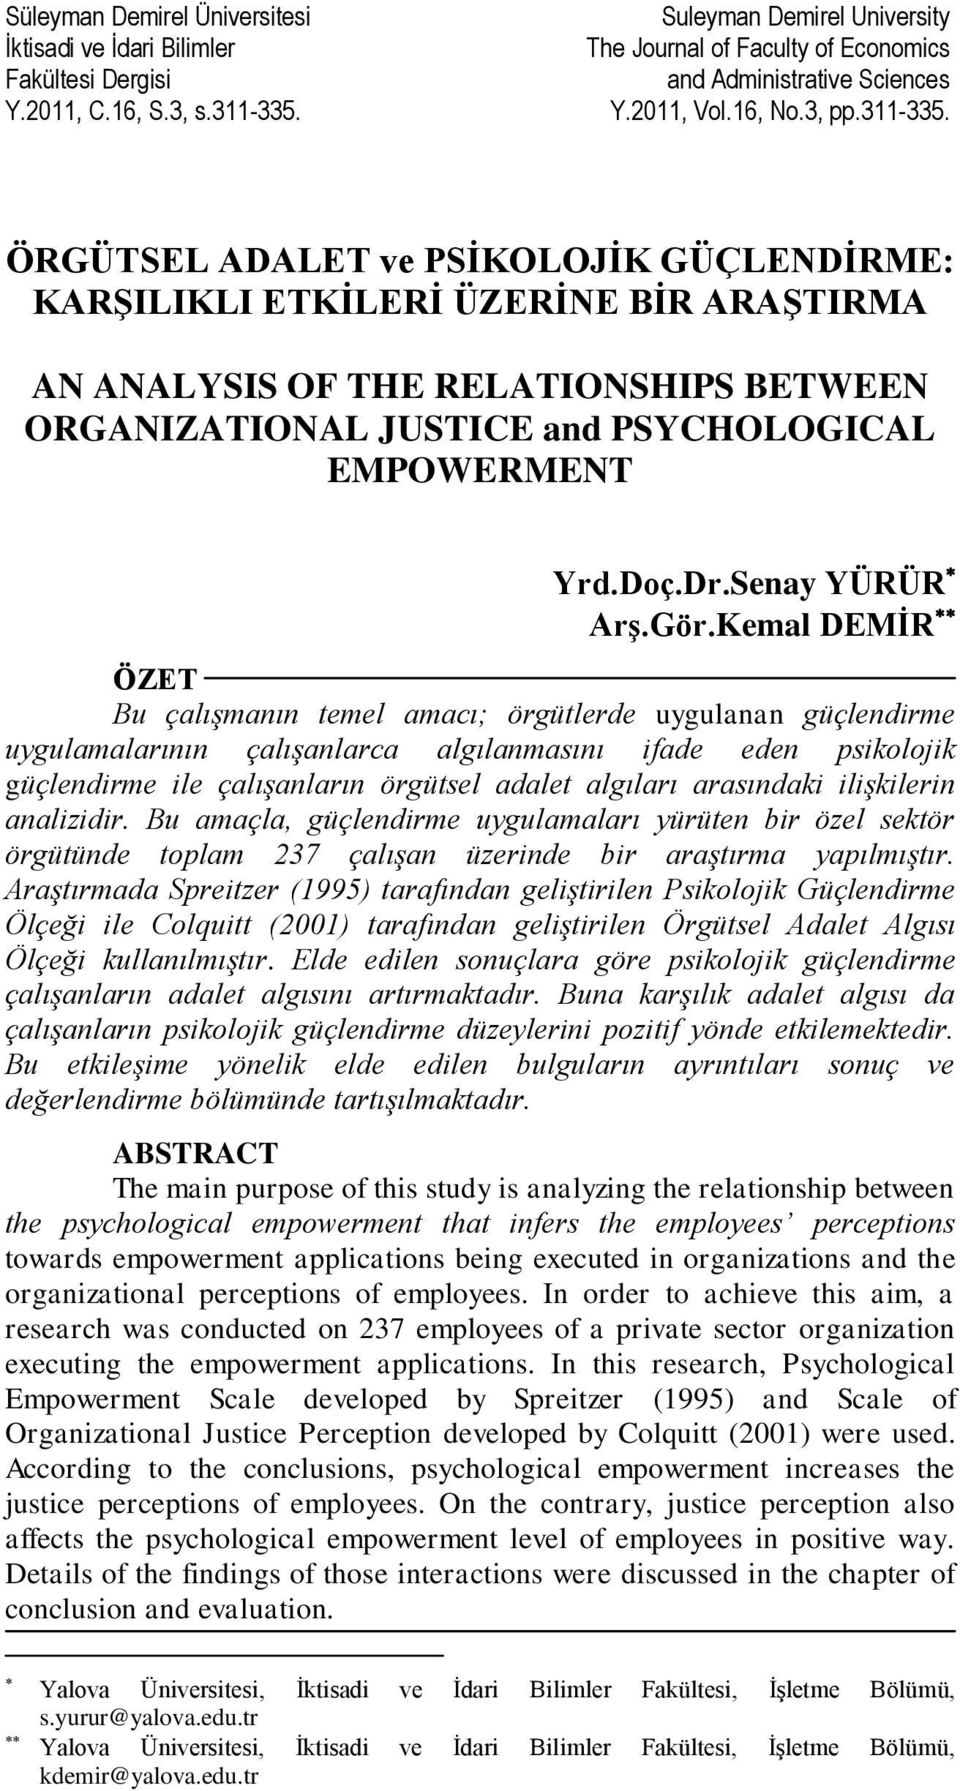 ÖRGÜTSEL ADALET ve PSİKOLOJİK GÜÇLENDİRME: KARŞILIKLI ETKİLERİ ÜZERİNE BİR ARAŞTIRMA AN ANALYSIS OF THE RELATIONSHIPS BETWEEN ORGANIZATIONAL JUSTICE and PSYCHOLOGICAL EMPOWERMENT Yrd.Doç.Dr.